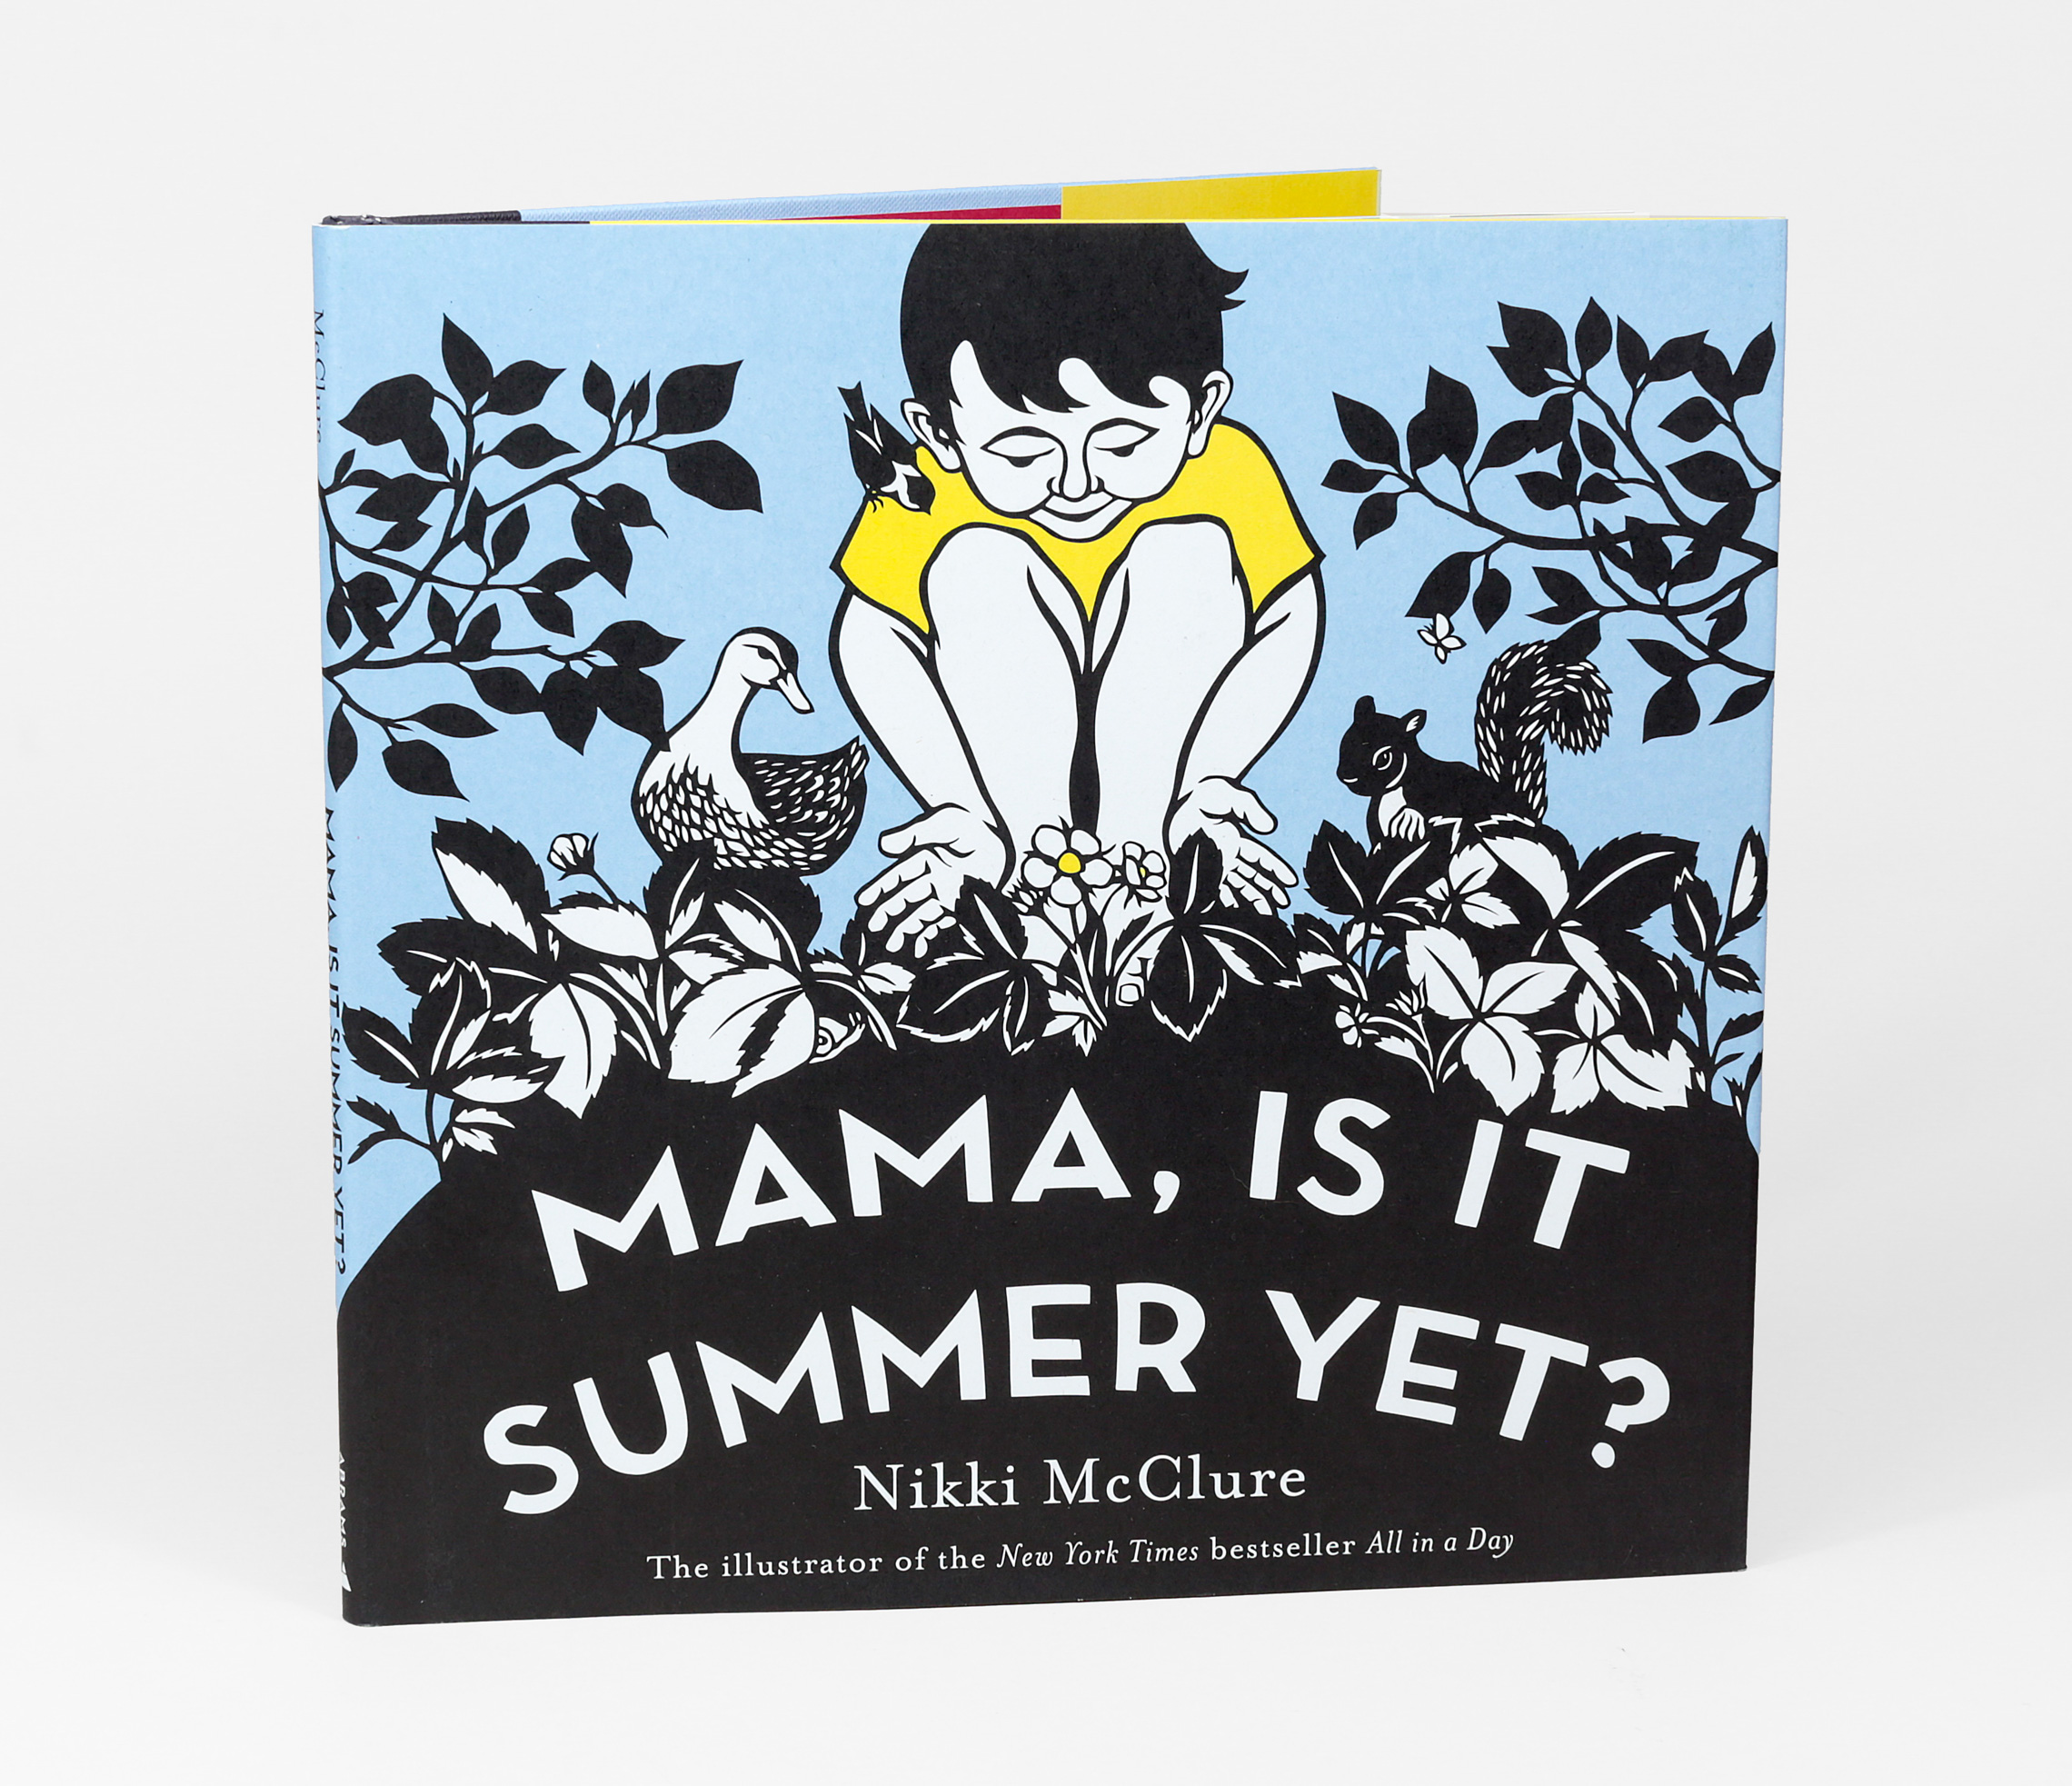 Nikki McClure - Mama Is It Summer Yet, book